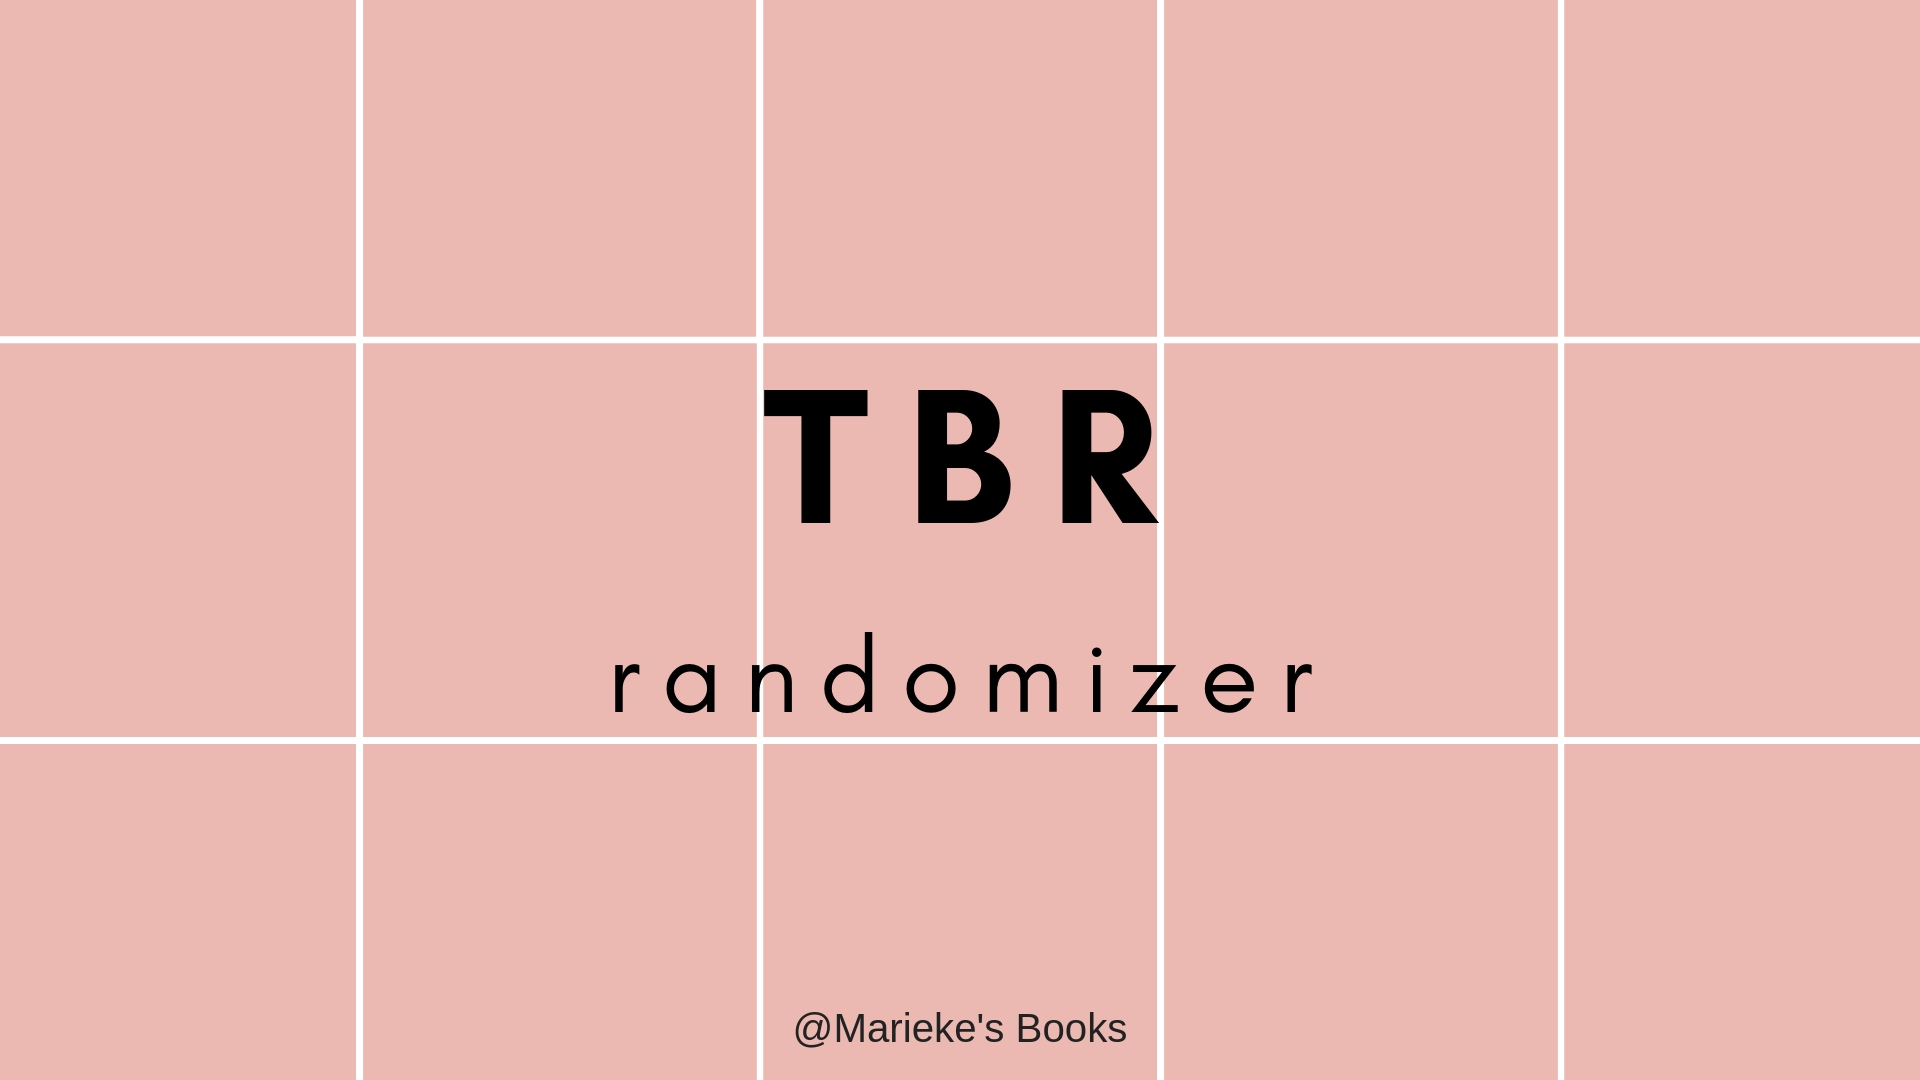 TBR randomizer | Marieke's Books